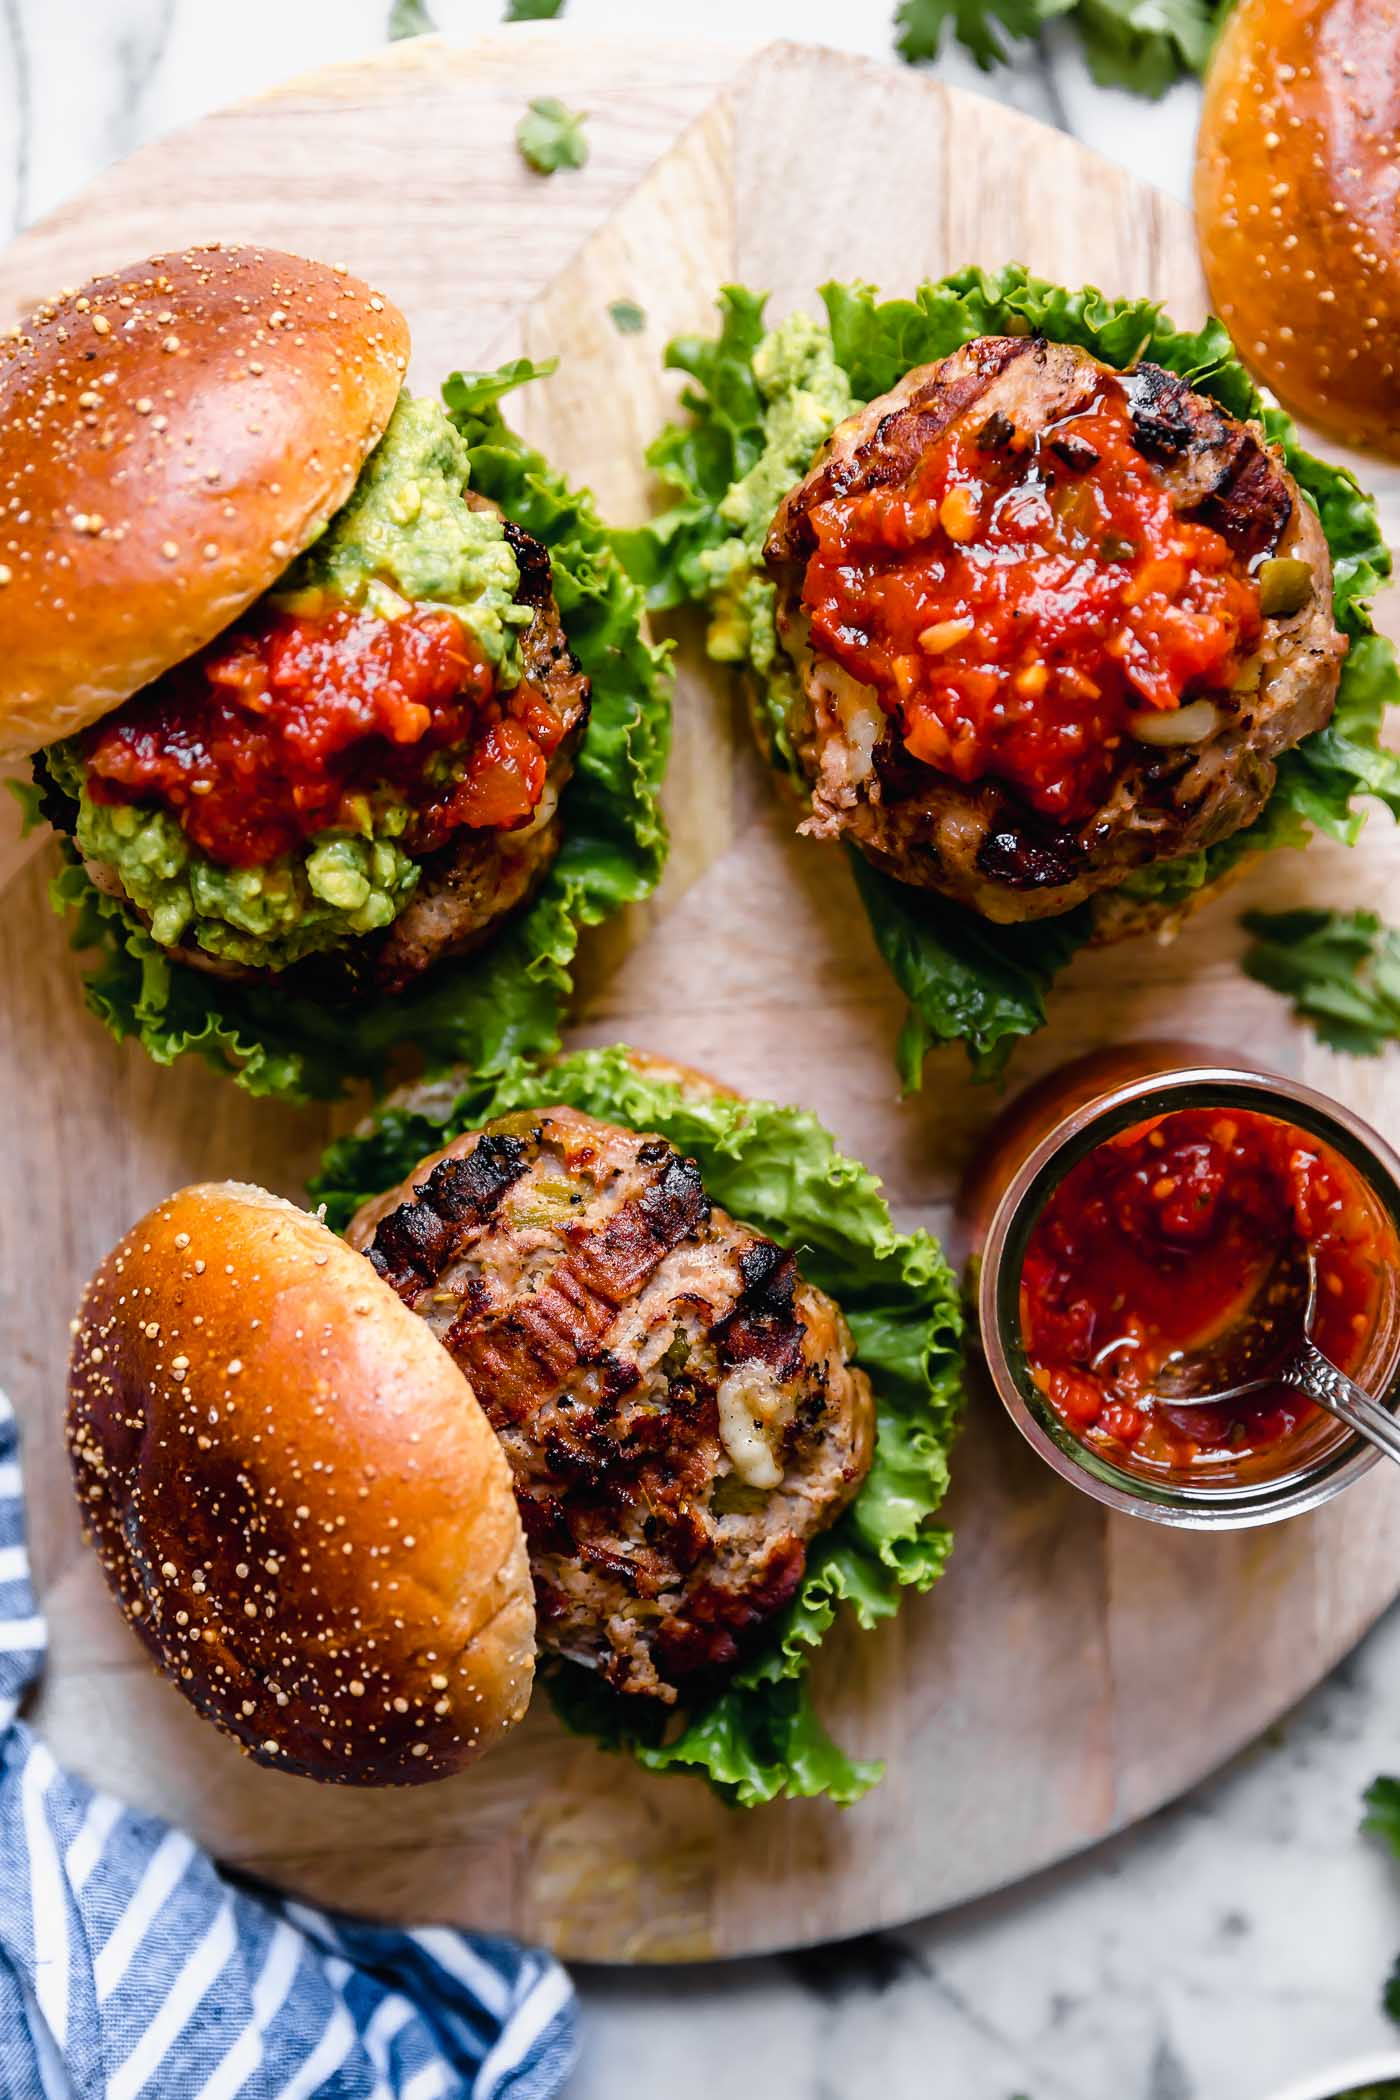 Stuffed southwest turkey burgers arranged on a round wooden board. One burger is topped with mashed avocado. Two of the burgers are topped with salsa. On the board with the burgers is a jar of salsa with a spoon in it, a striped blue linen, and some fresh cilantro.